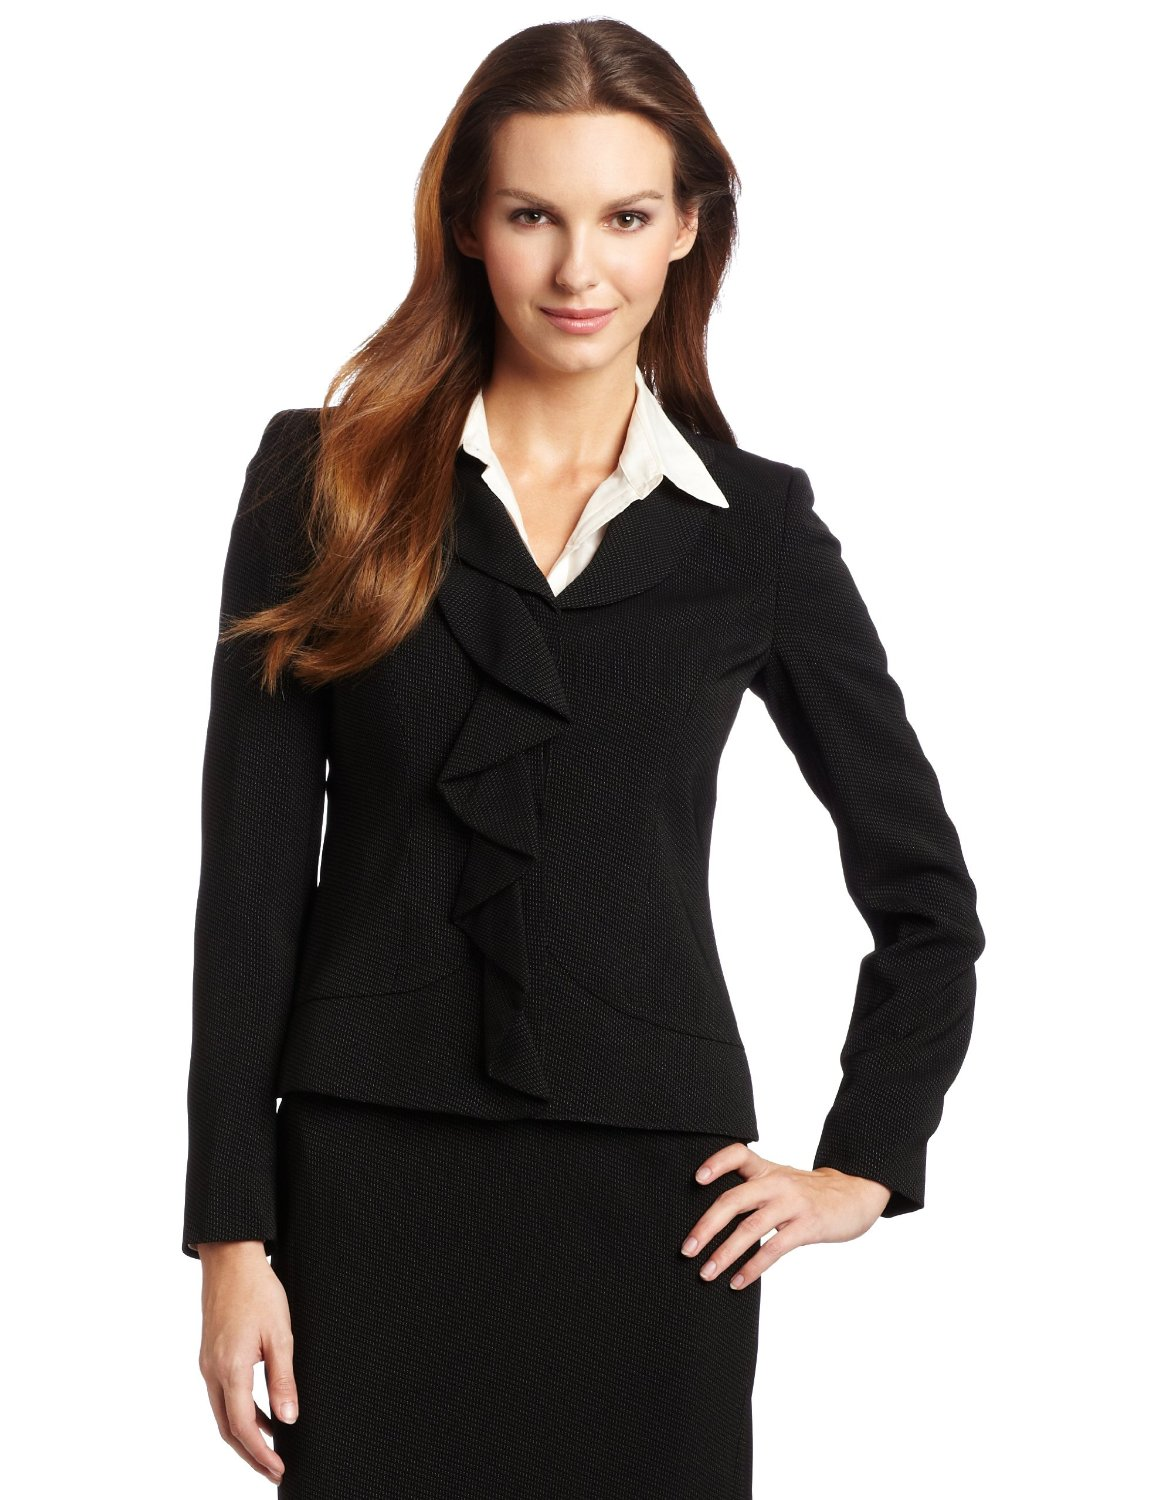 Lastest Professional Attire Women Dress Code  Women39s Business